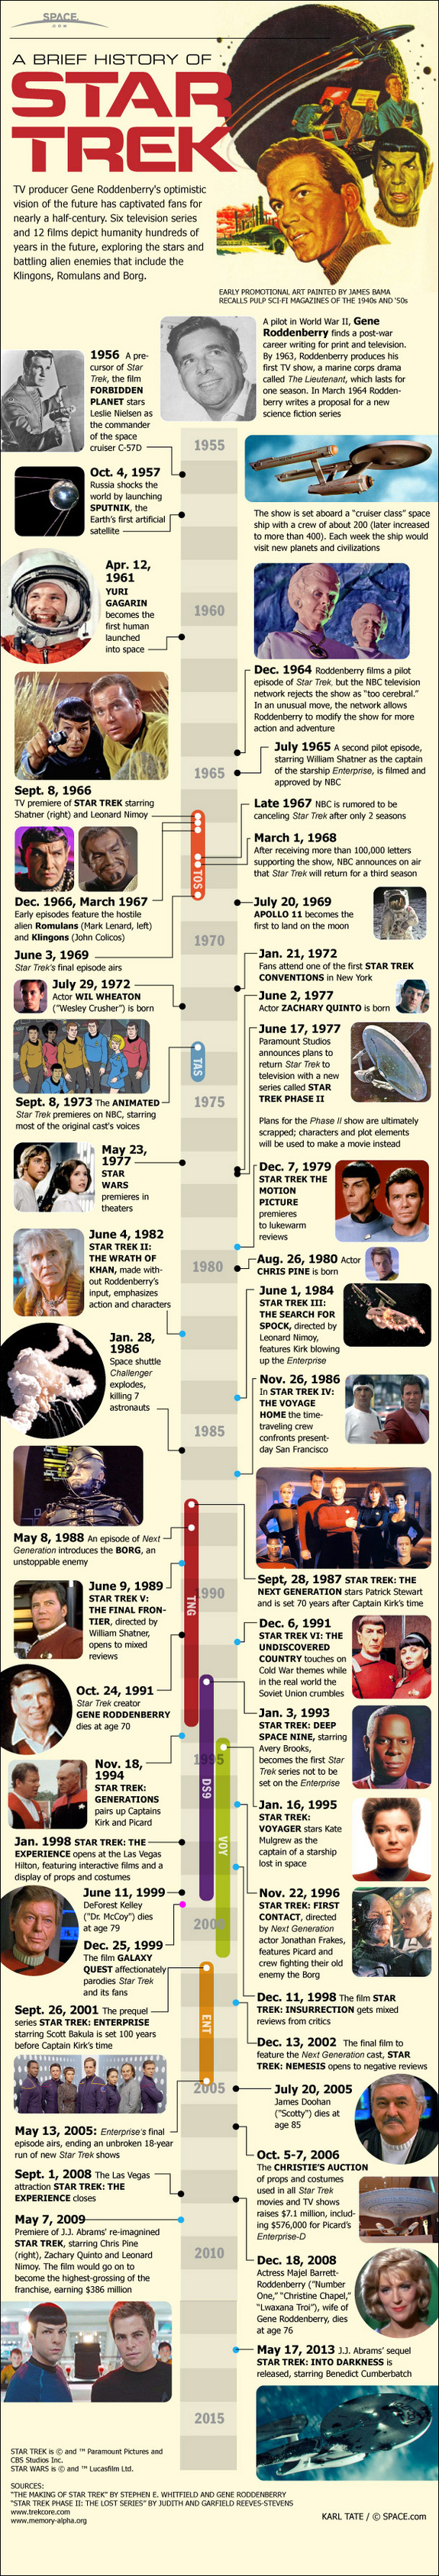 The Evolution Of Star Trek - Infographic